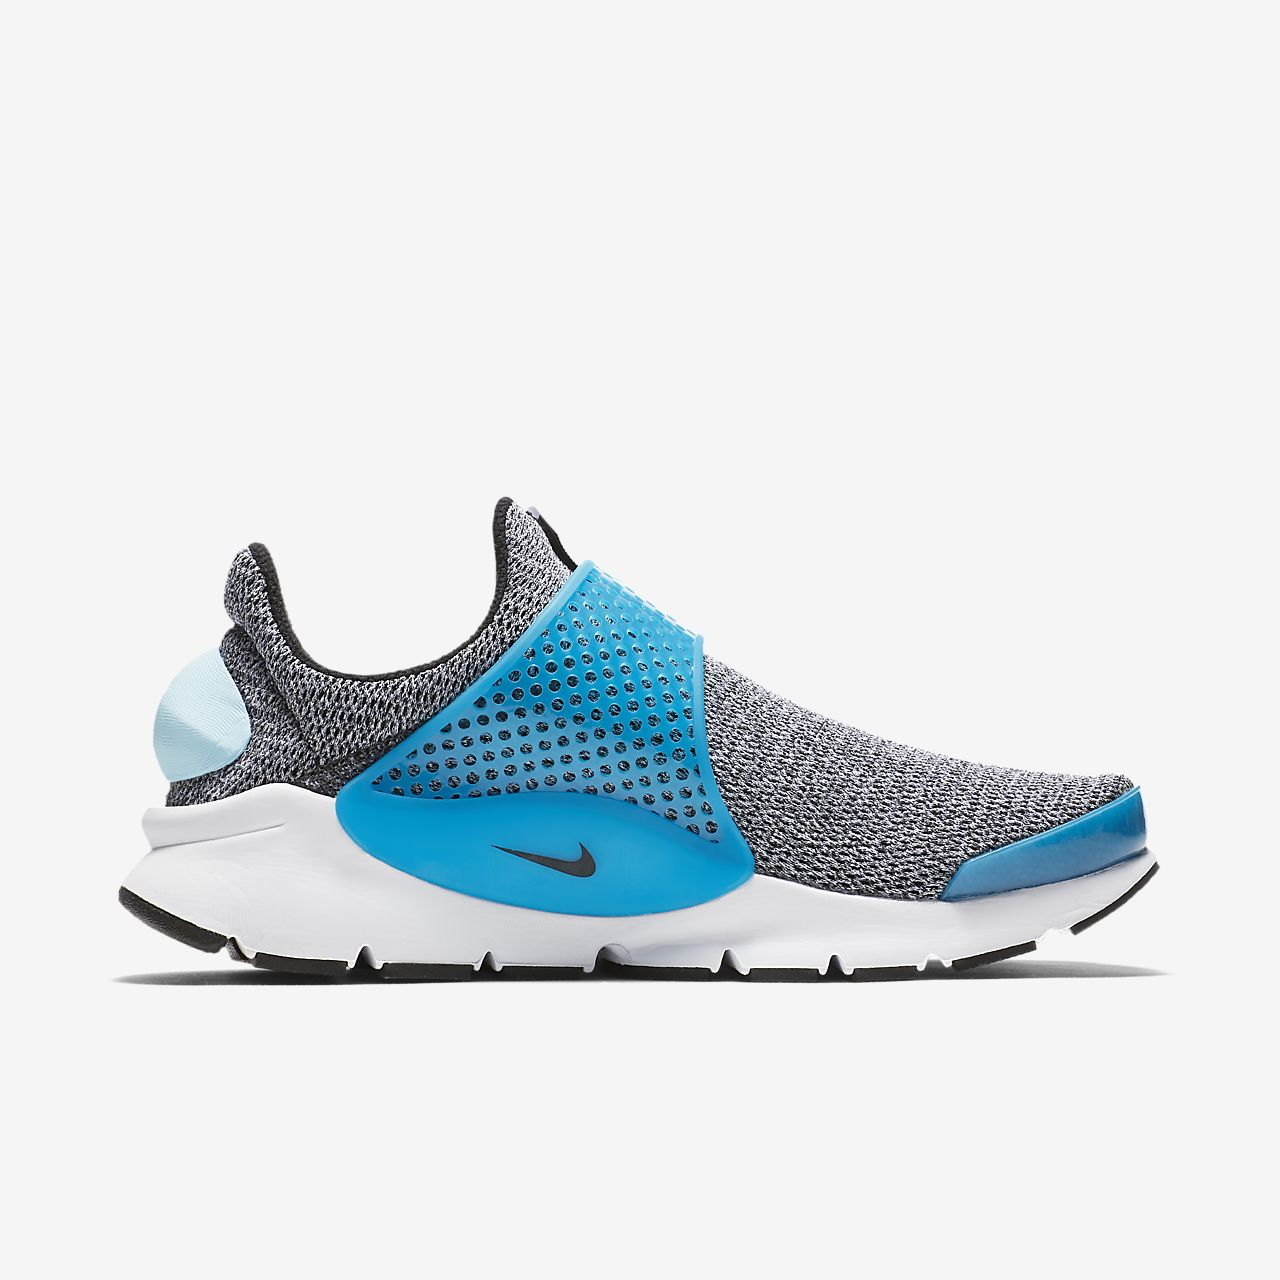 ... Nike Sock Dart SE Women's Shoe